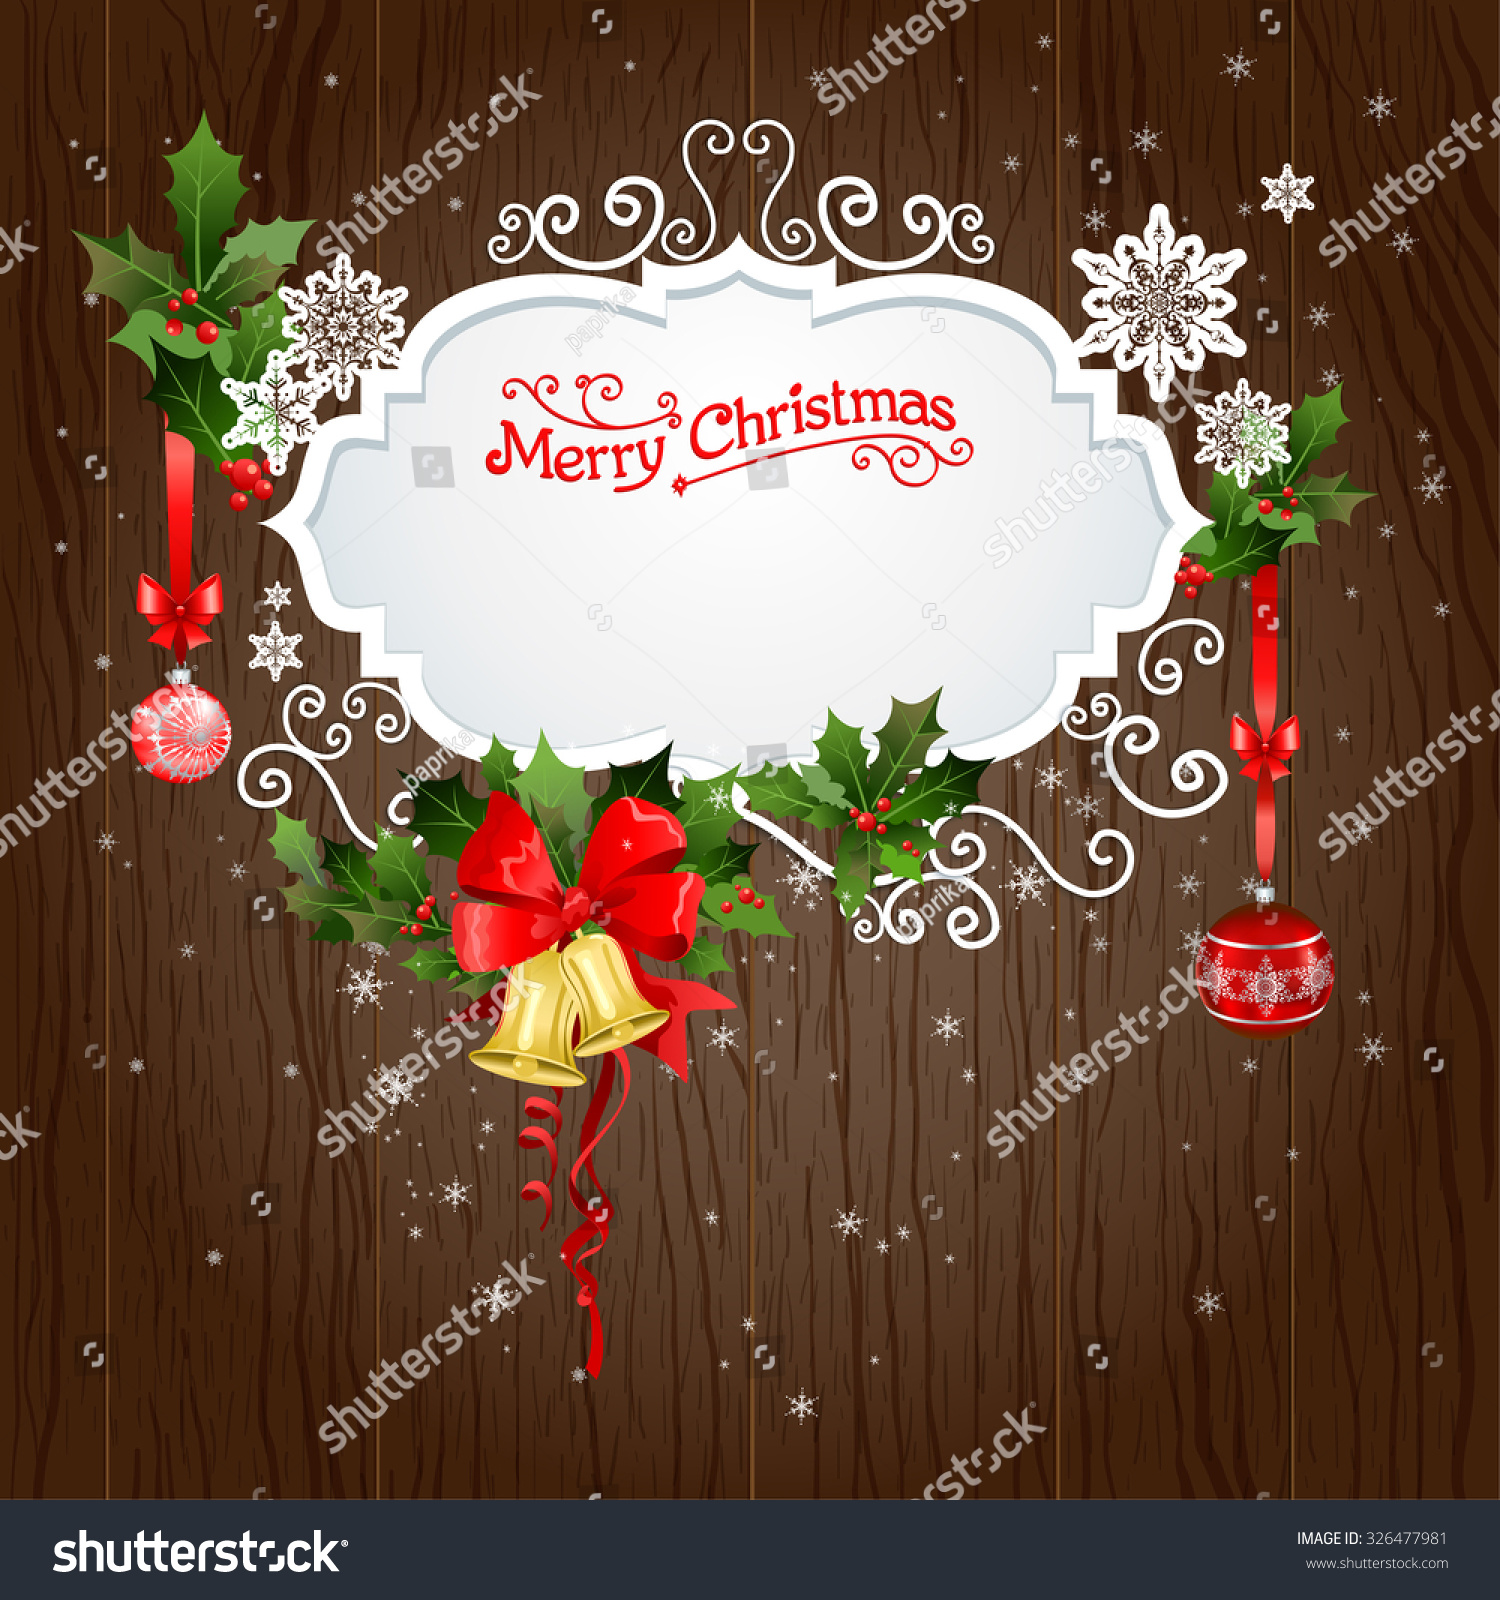 Pics photos merry christmas argyle twitter backgrounds - Holiday Background With Christmas Decoration Festive Design For Card Banner Invitation Leaflet